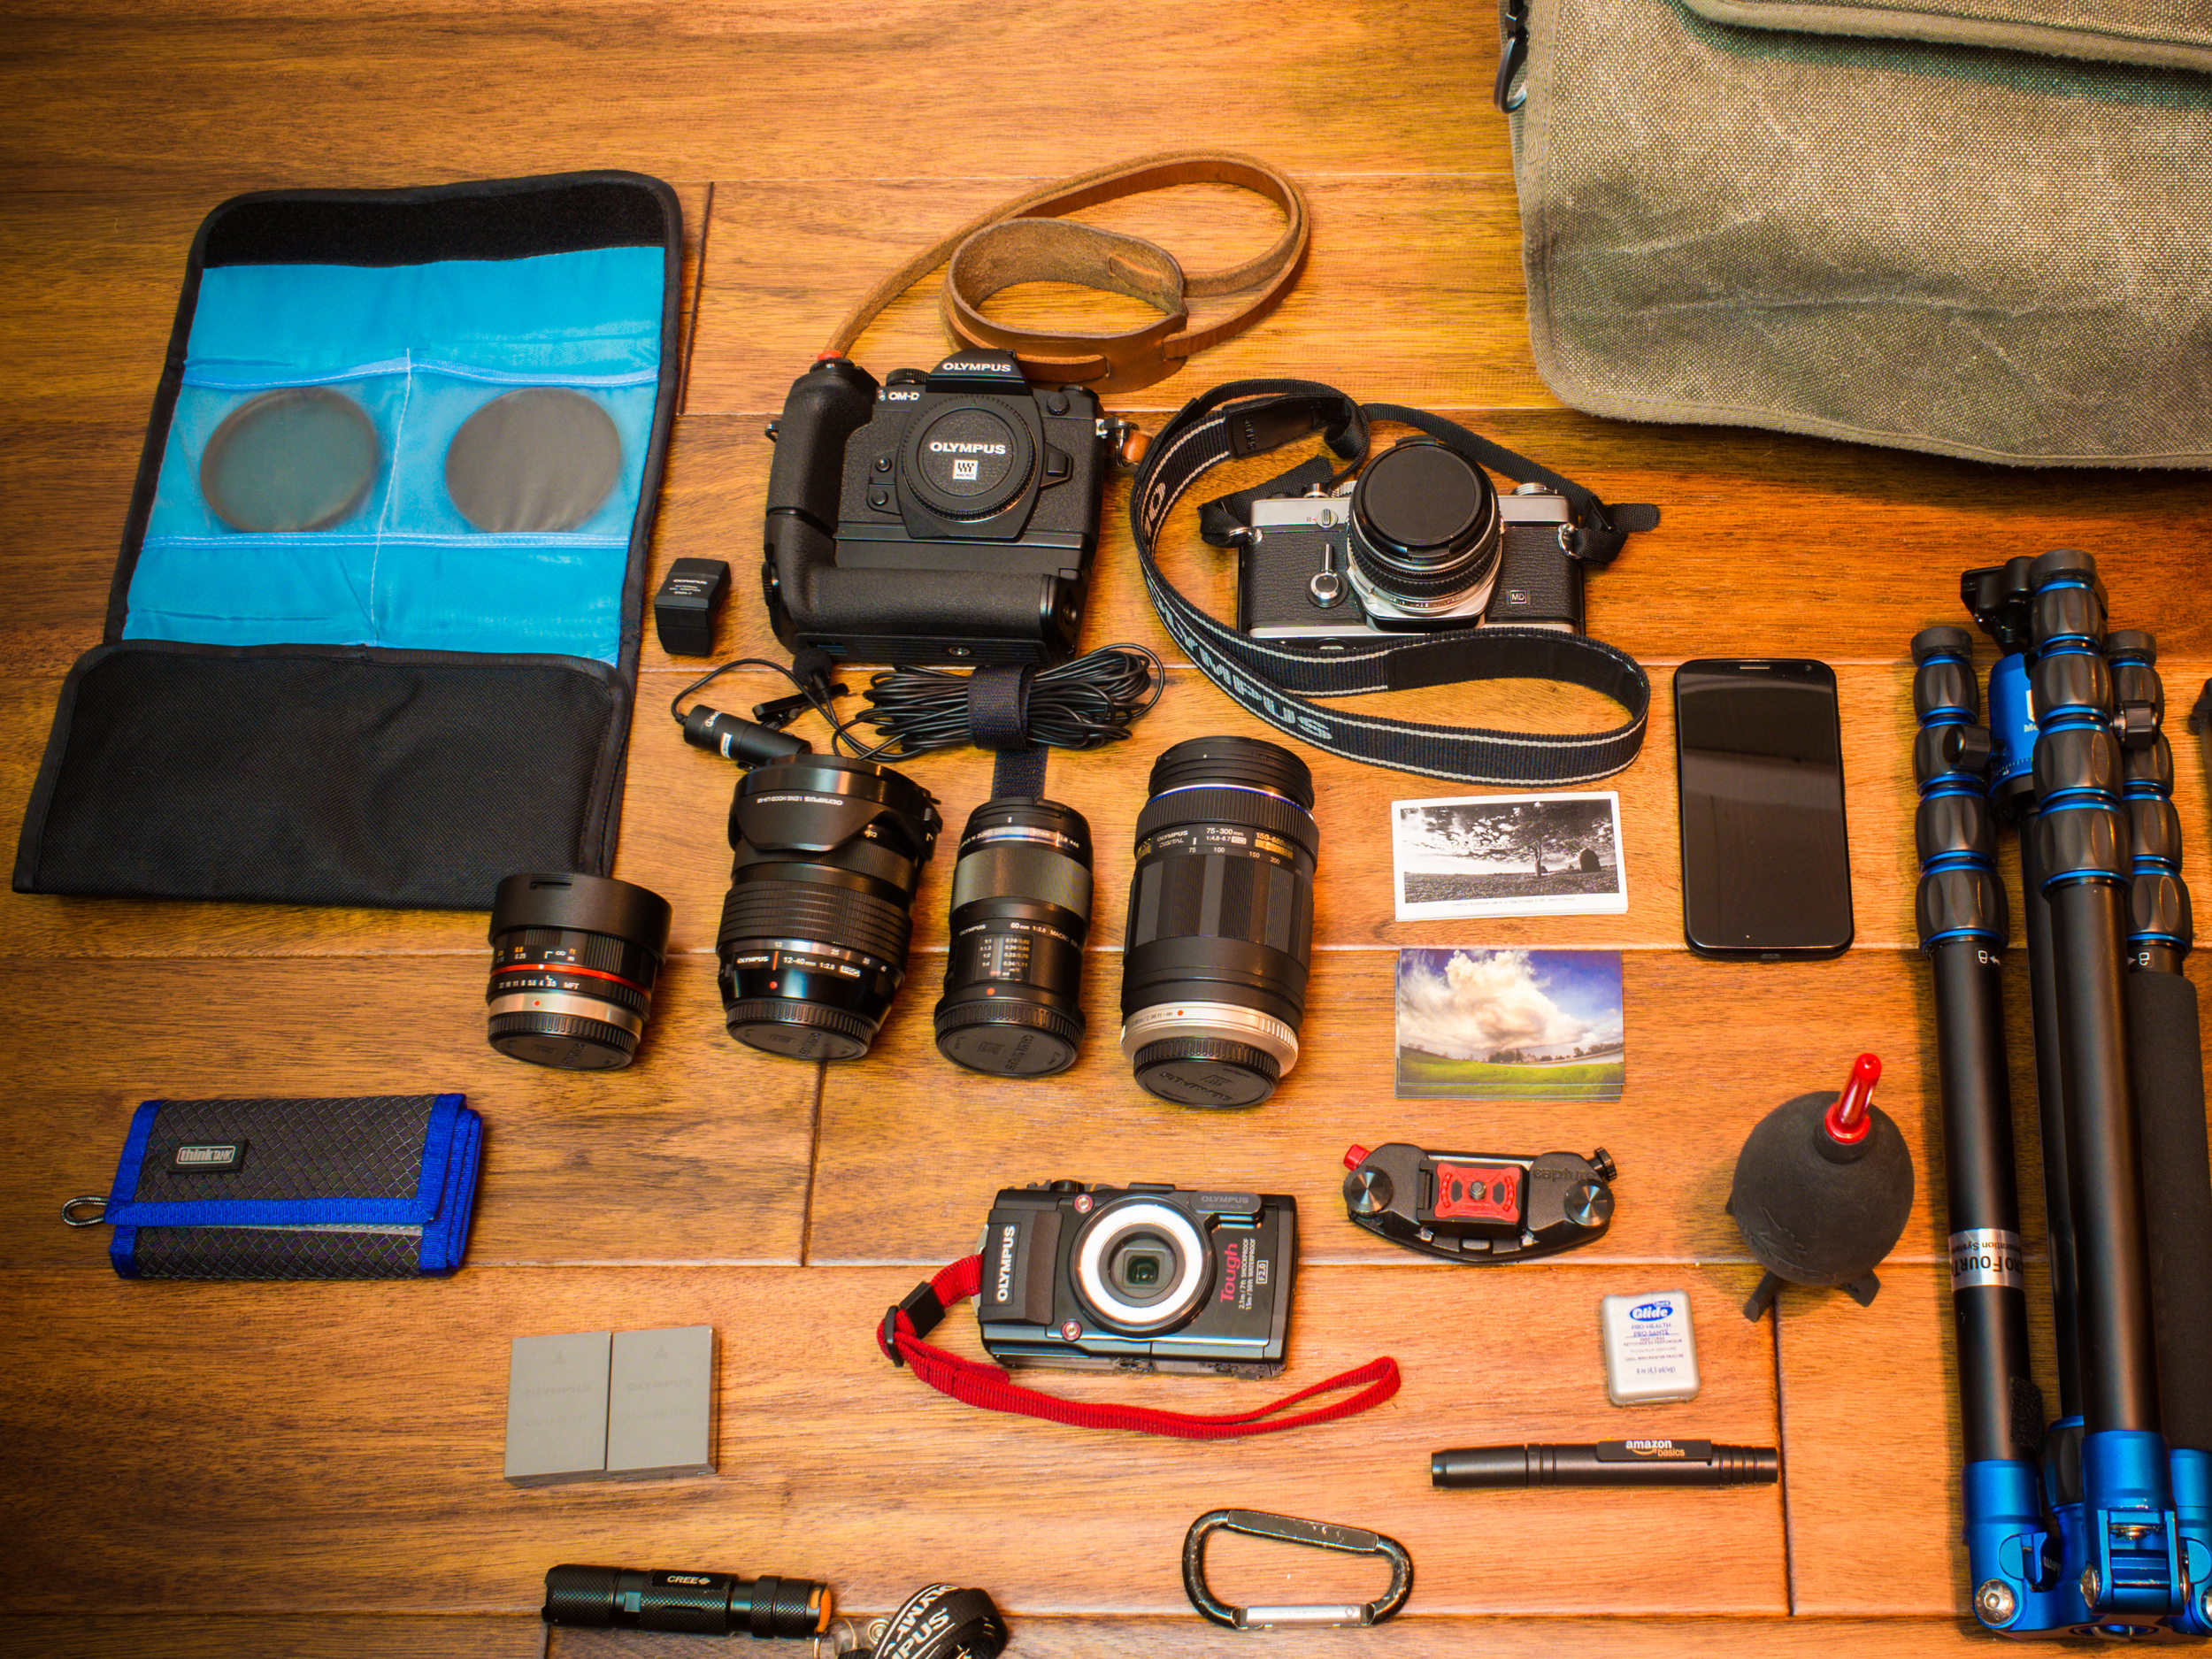 Typical of what I would carry when out in the woods shooting wildlife and maybe landscapes.